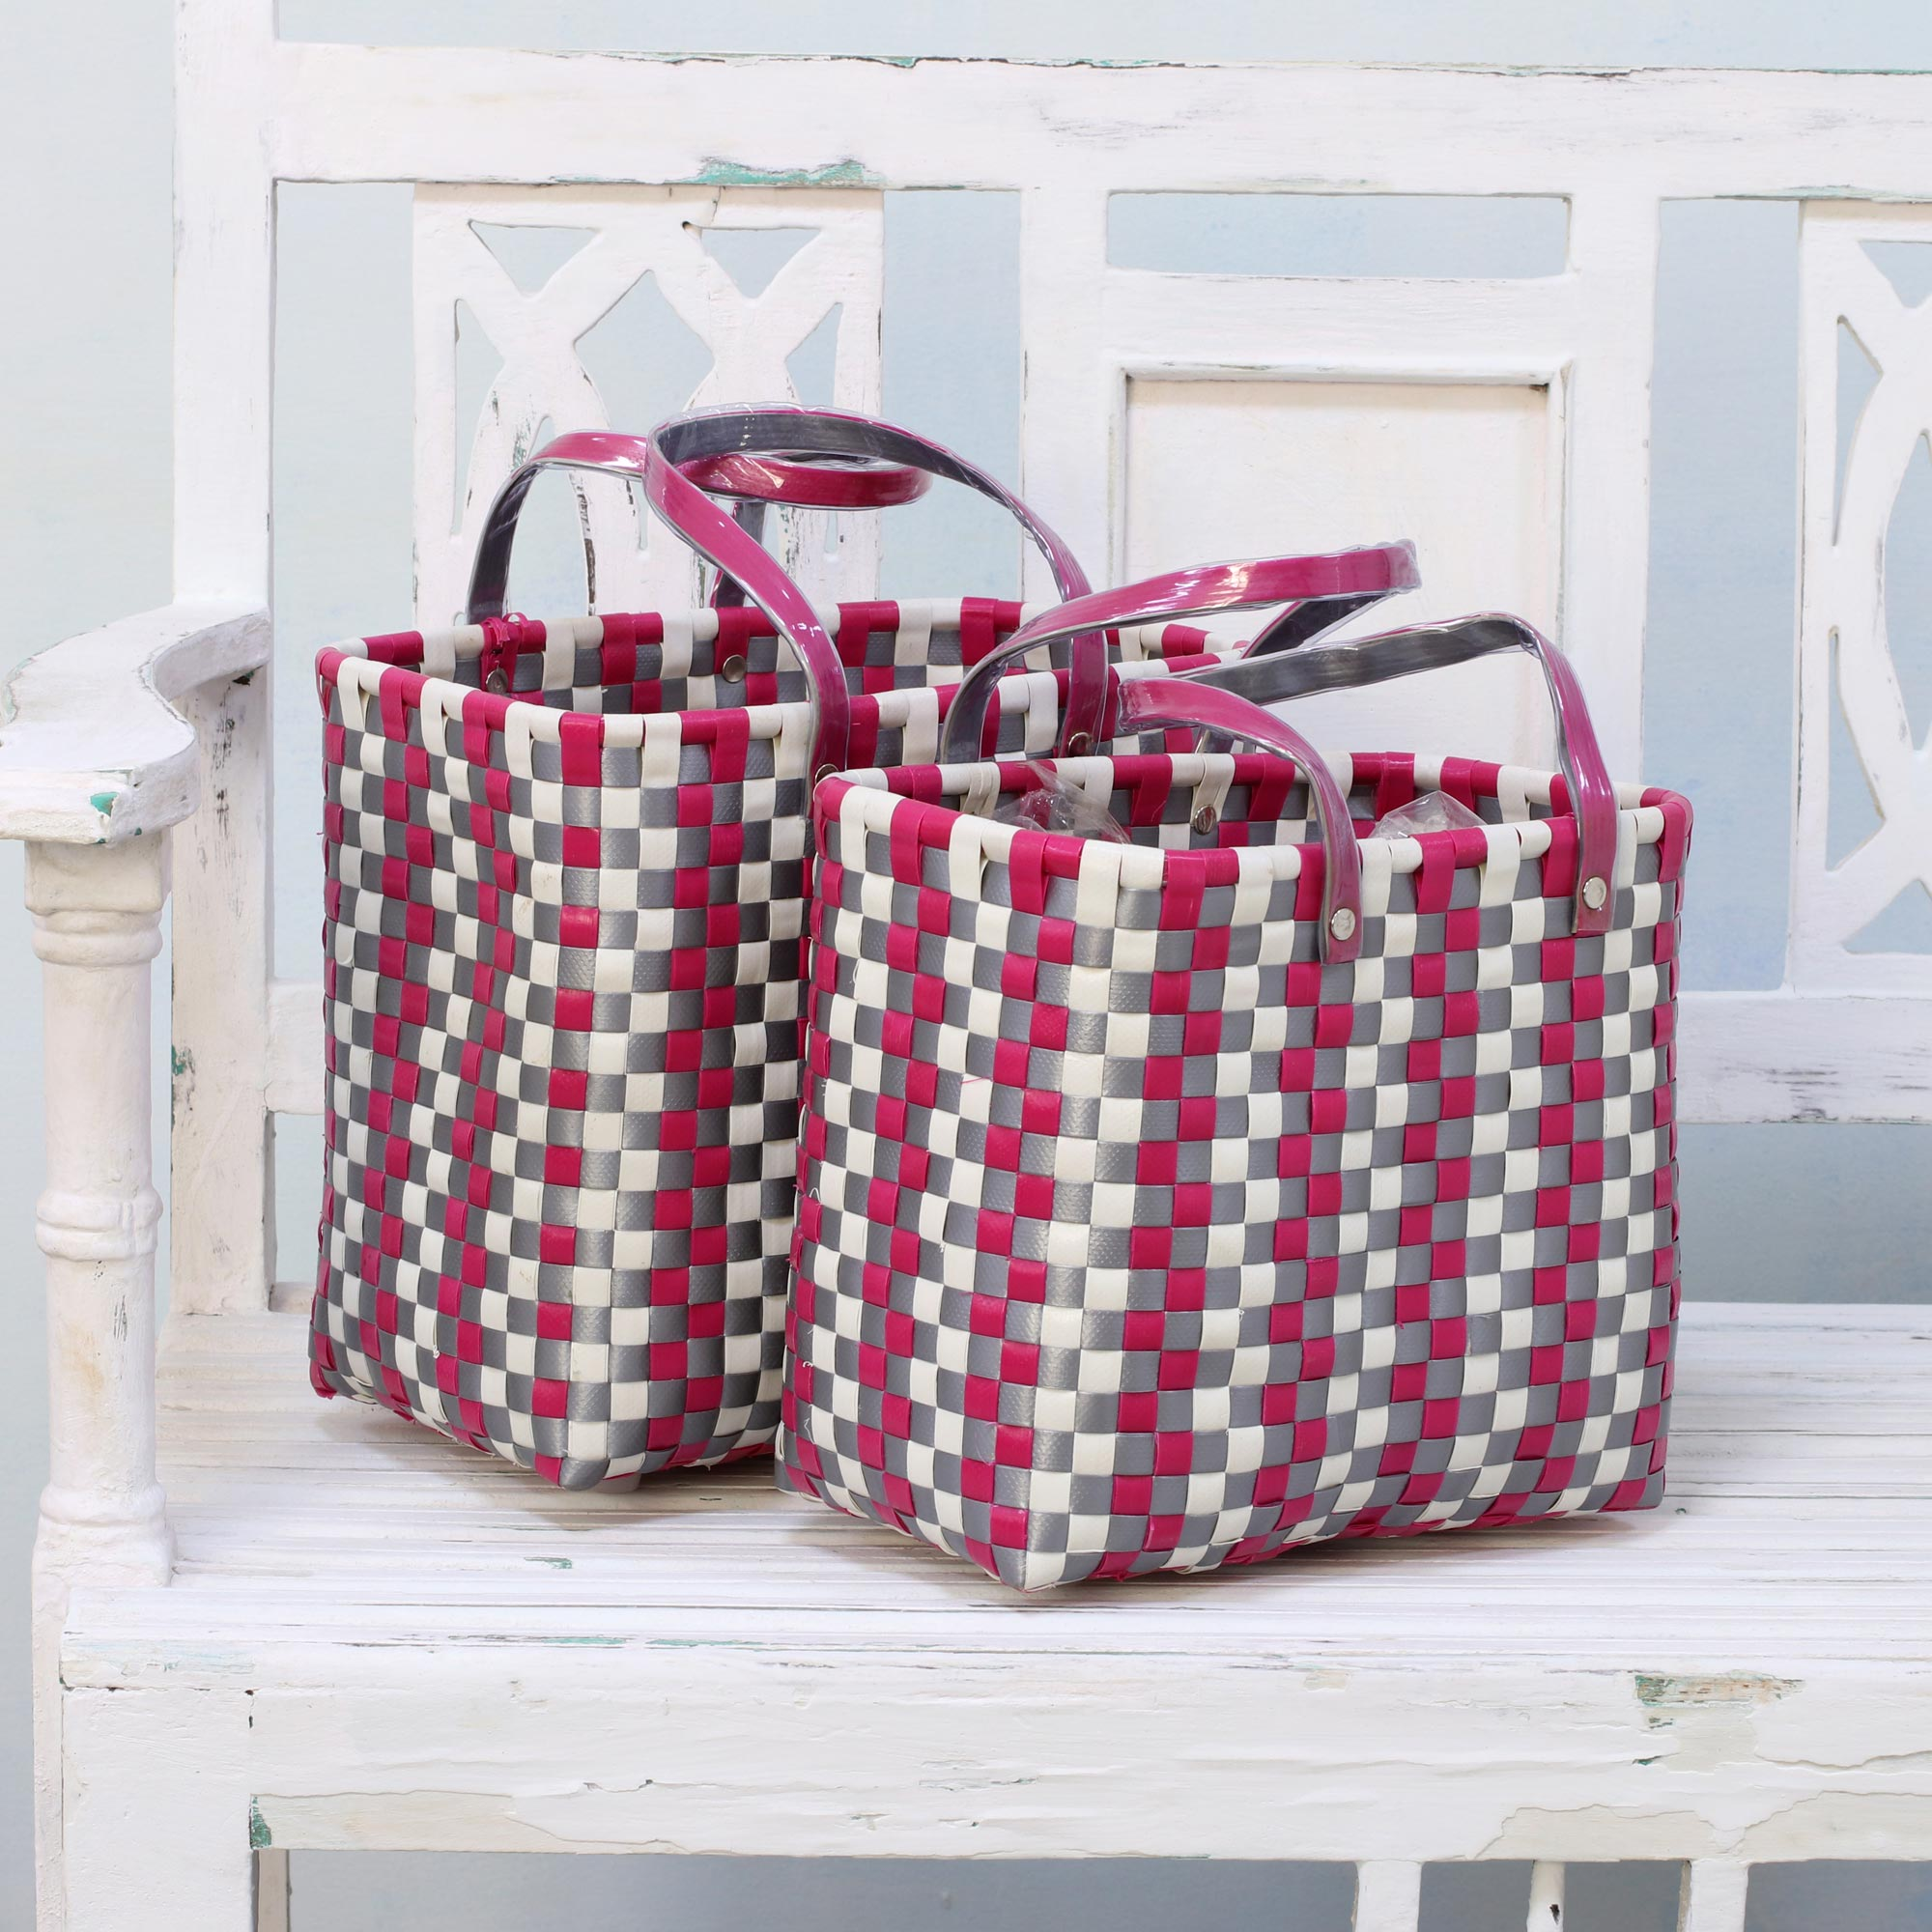 picnic baskets Eco-Friendly Picnic Two Handwoven Recycled Plastic Baskets from India Fuchsia gray white Fourth of July